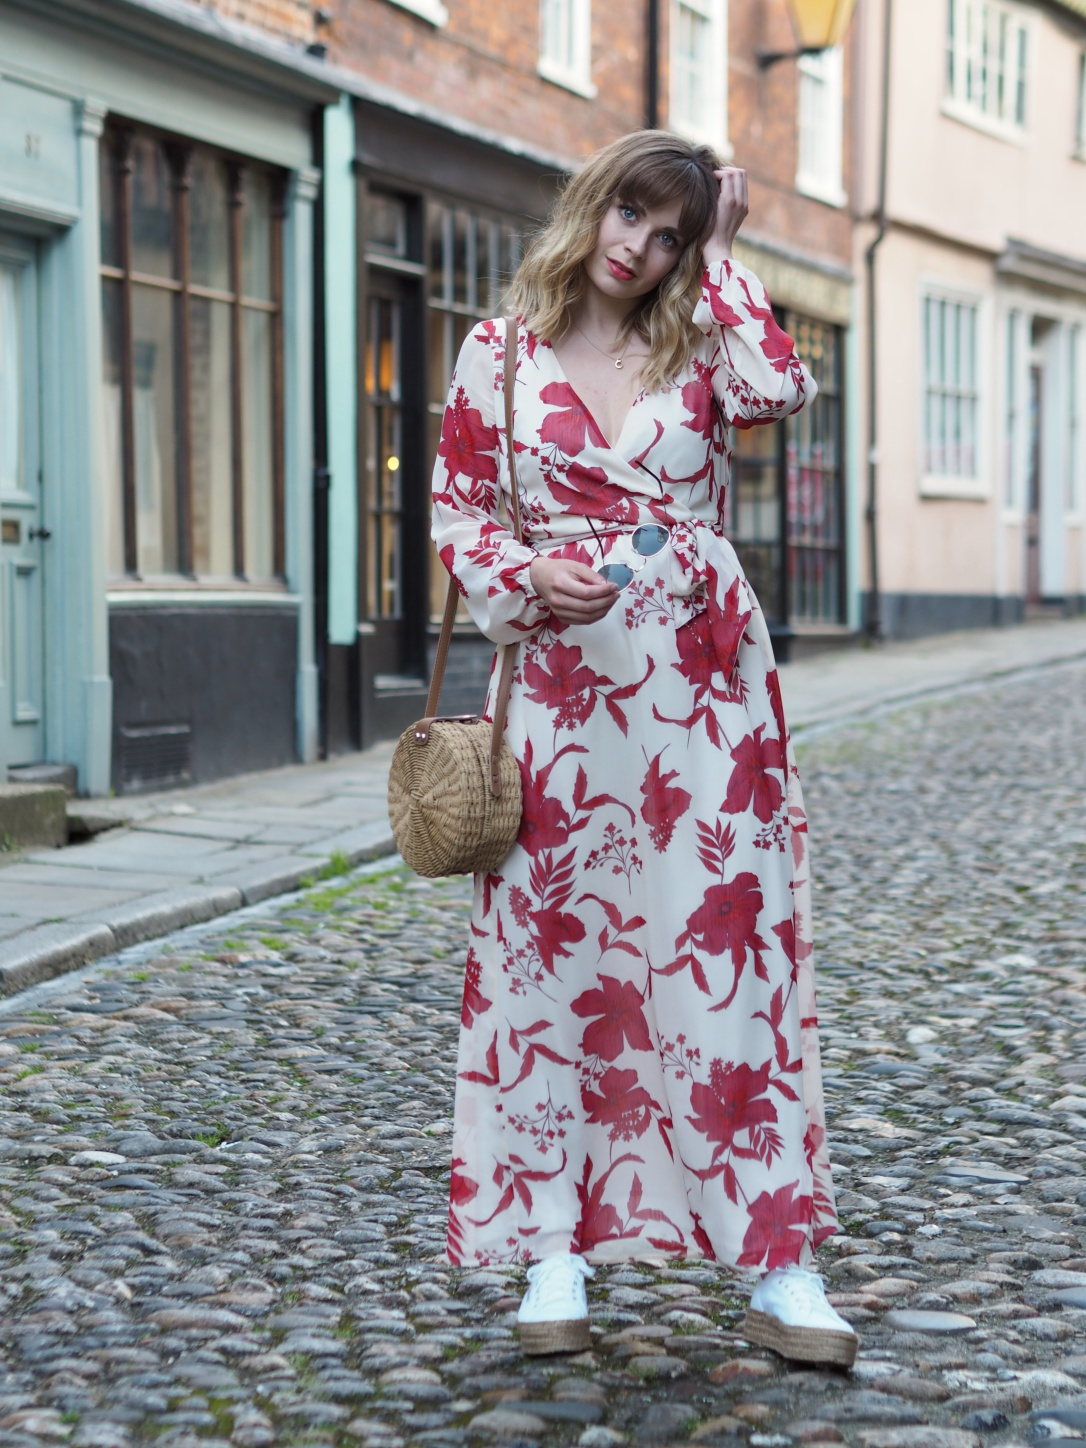 Wearing a maxi dress with trainers